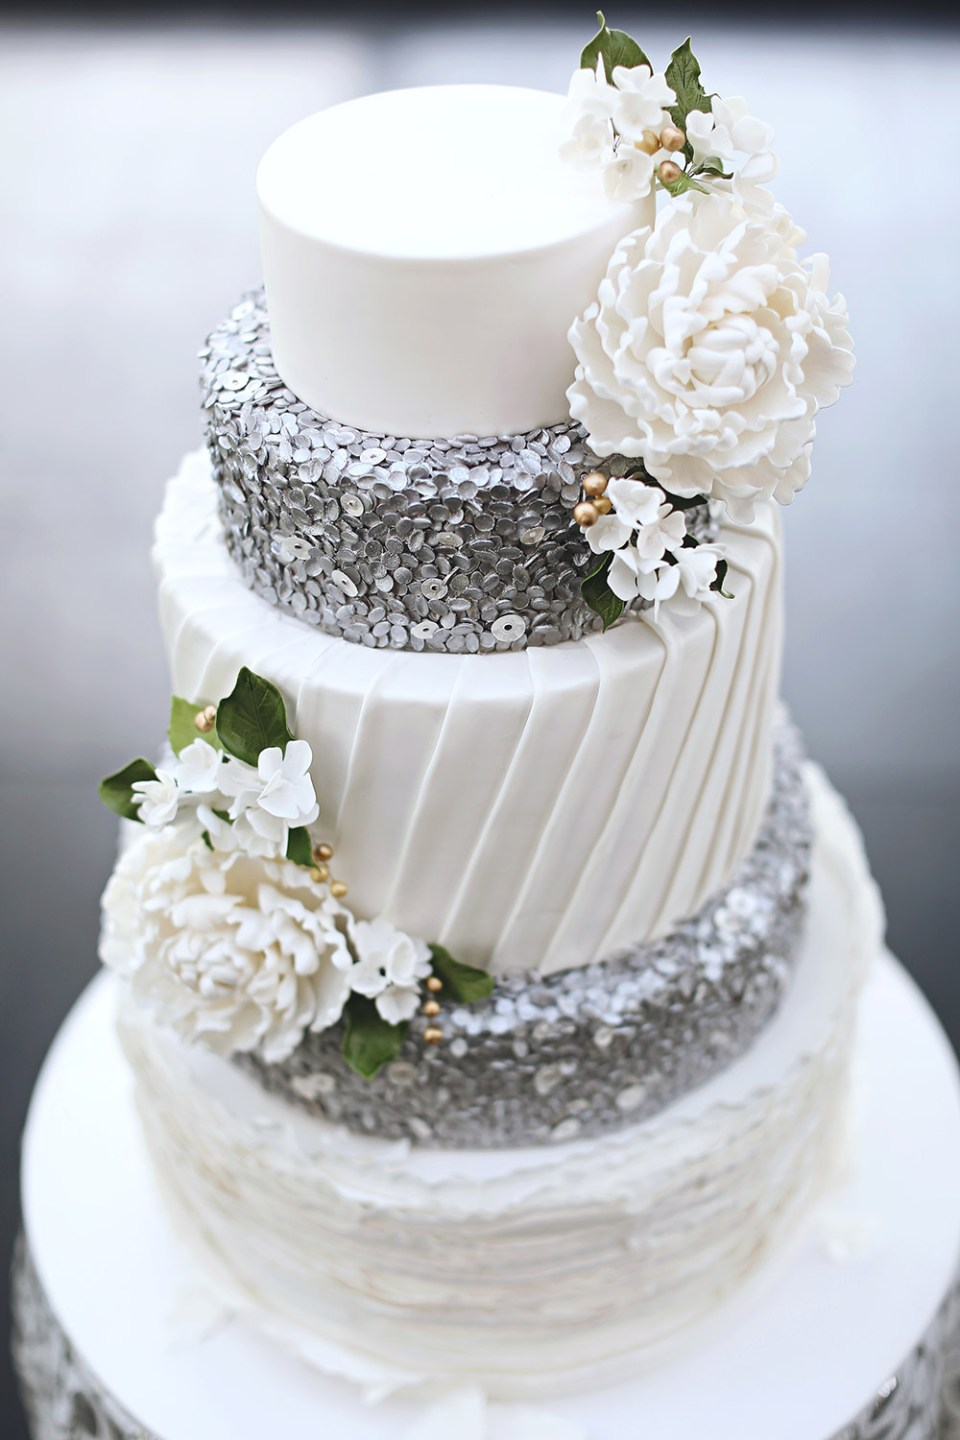 White and silver wedding cake by Miss Shortcakes. Photo by Axioo. www.theweddingnotebook.com